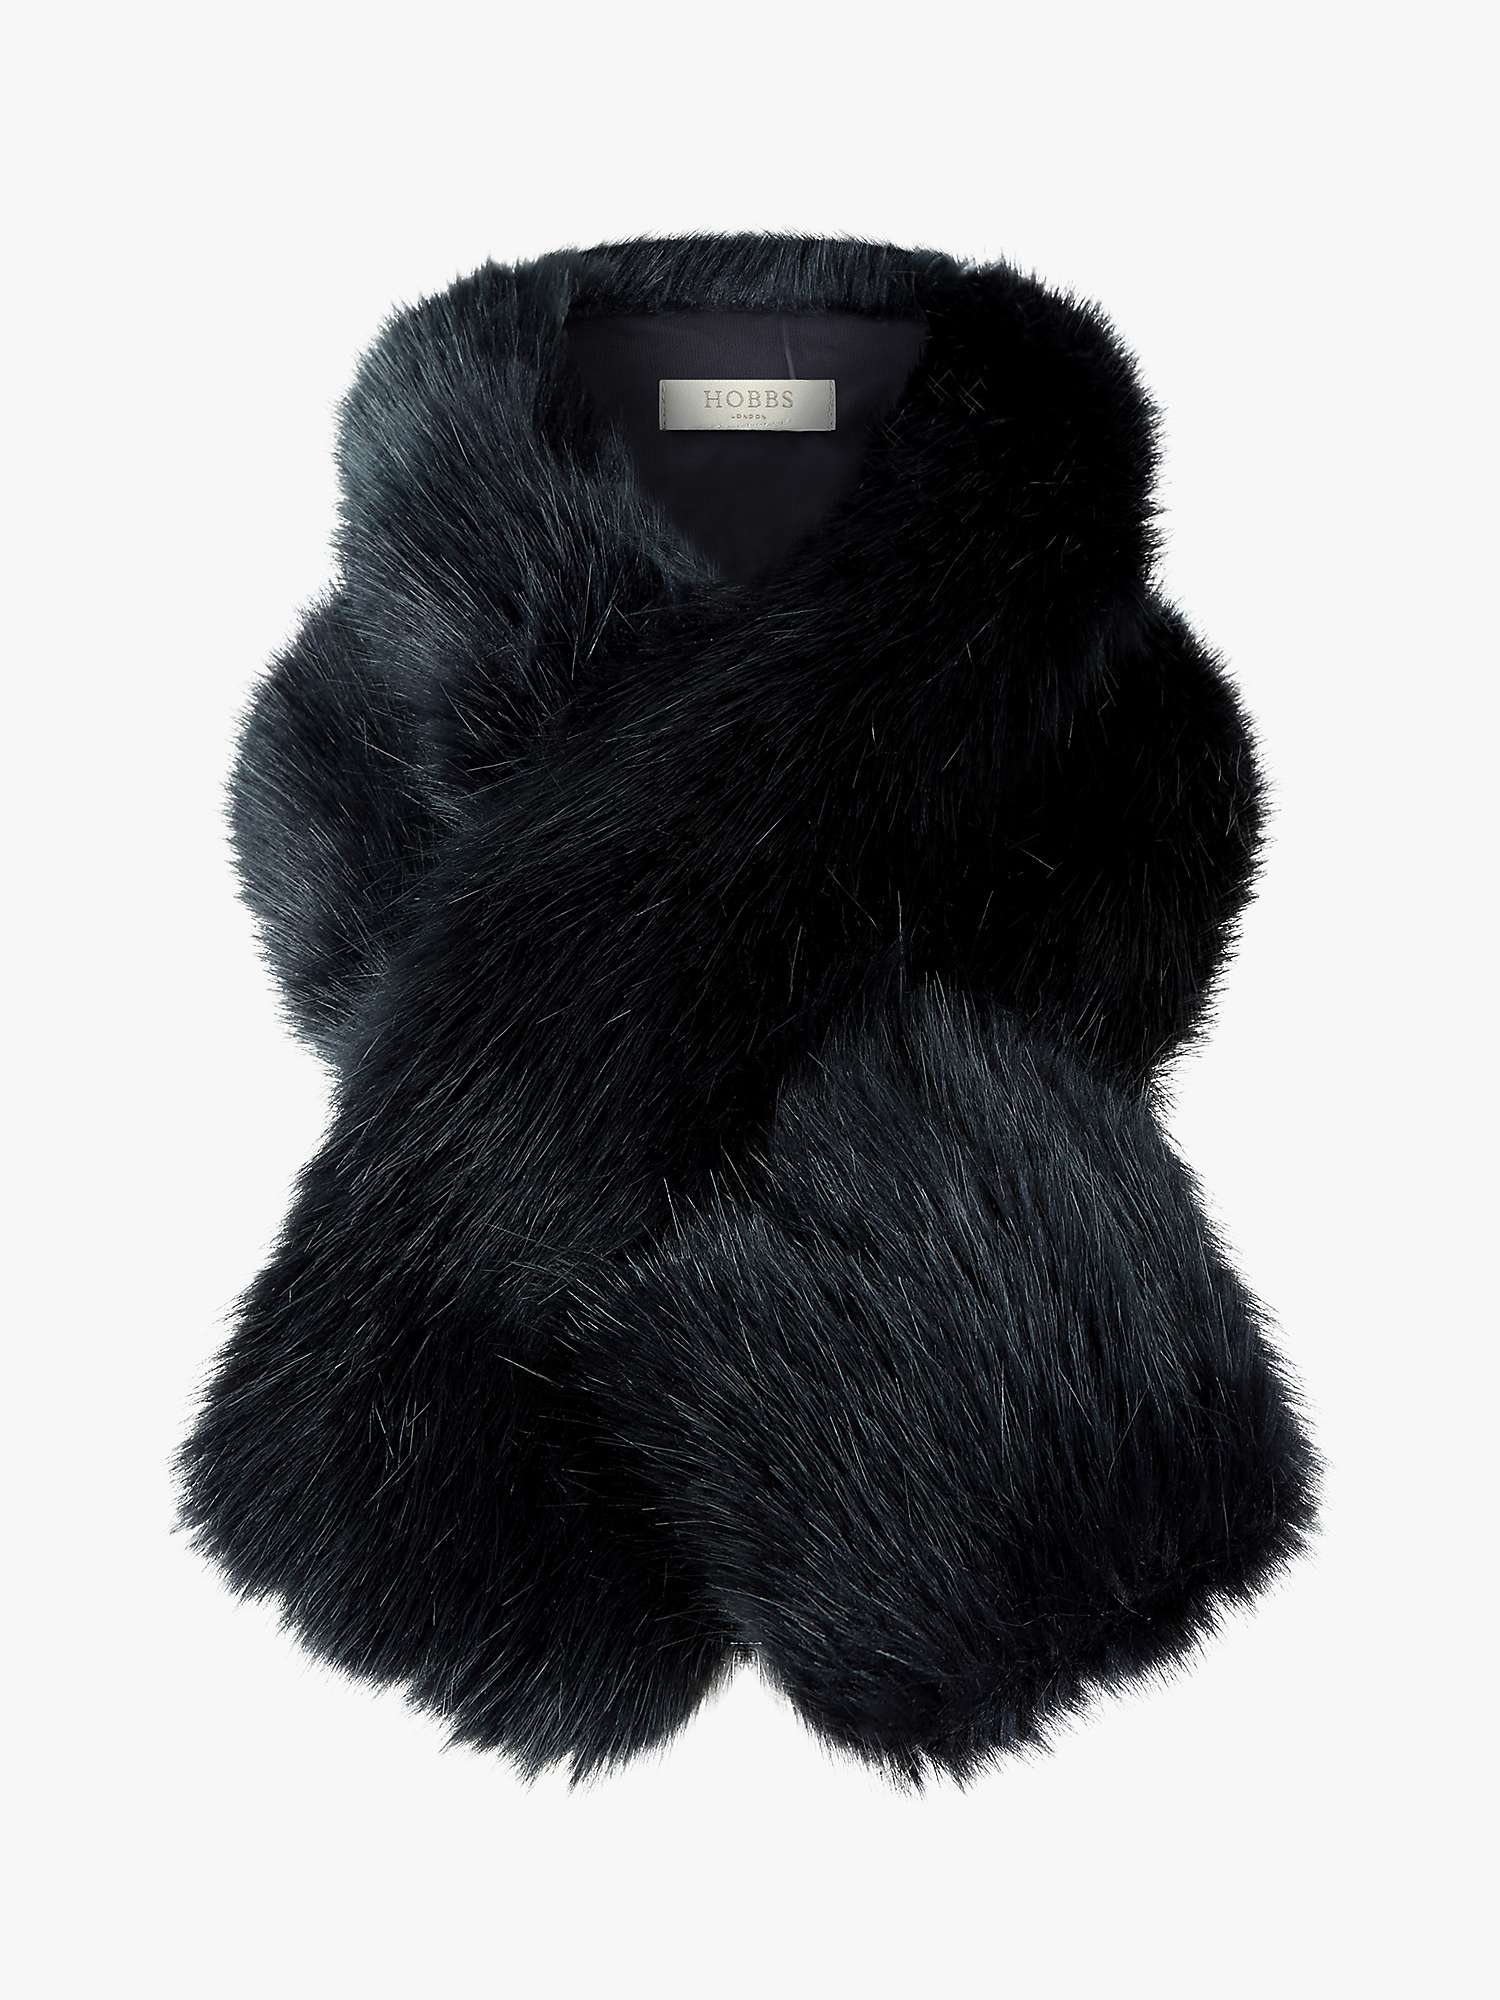 Hobbs Leigh Faux Fur Neck Wrap, Navy by Hobbs